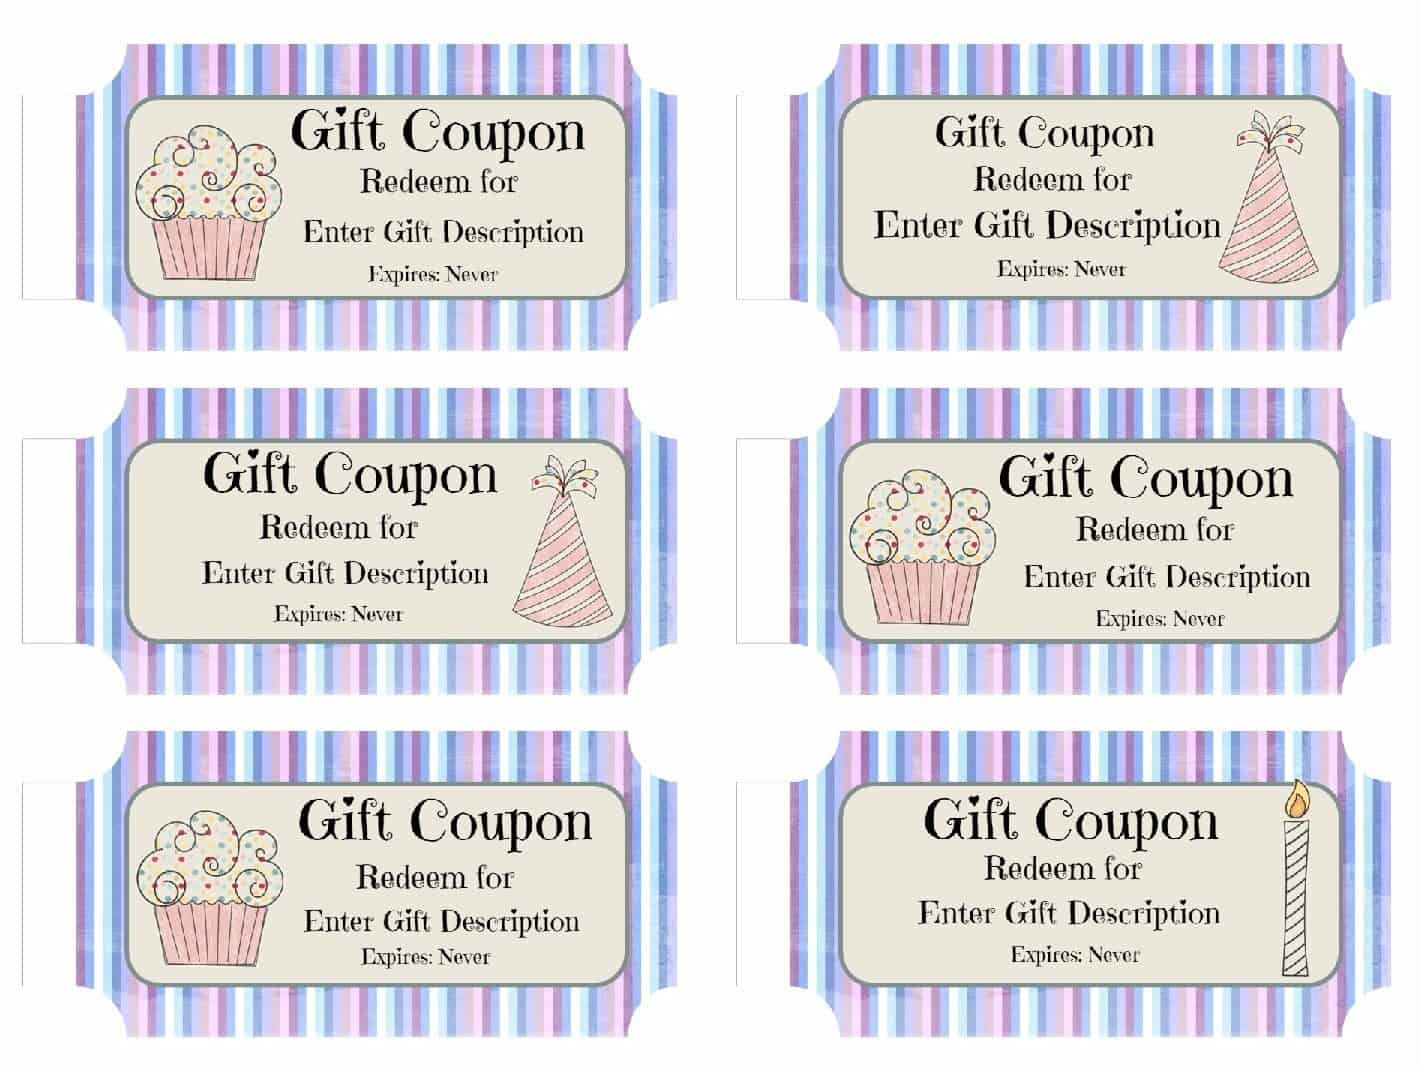 Birthday Gift Coupon Template Inspiration Free Custom Birthday Coupons  Customize Online & Print At Home